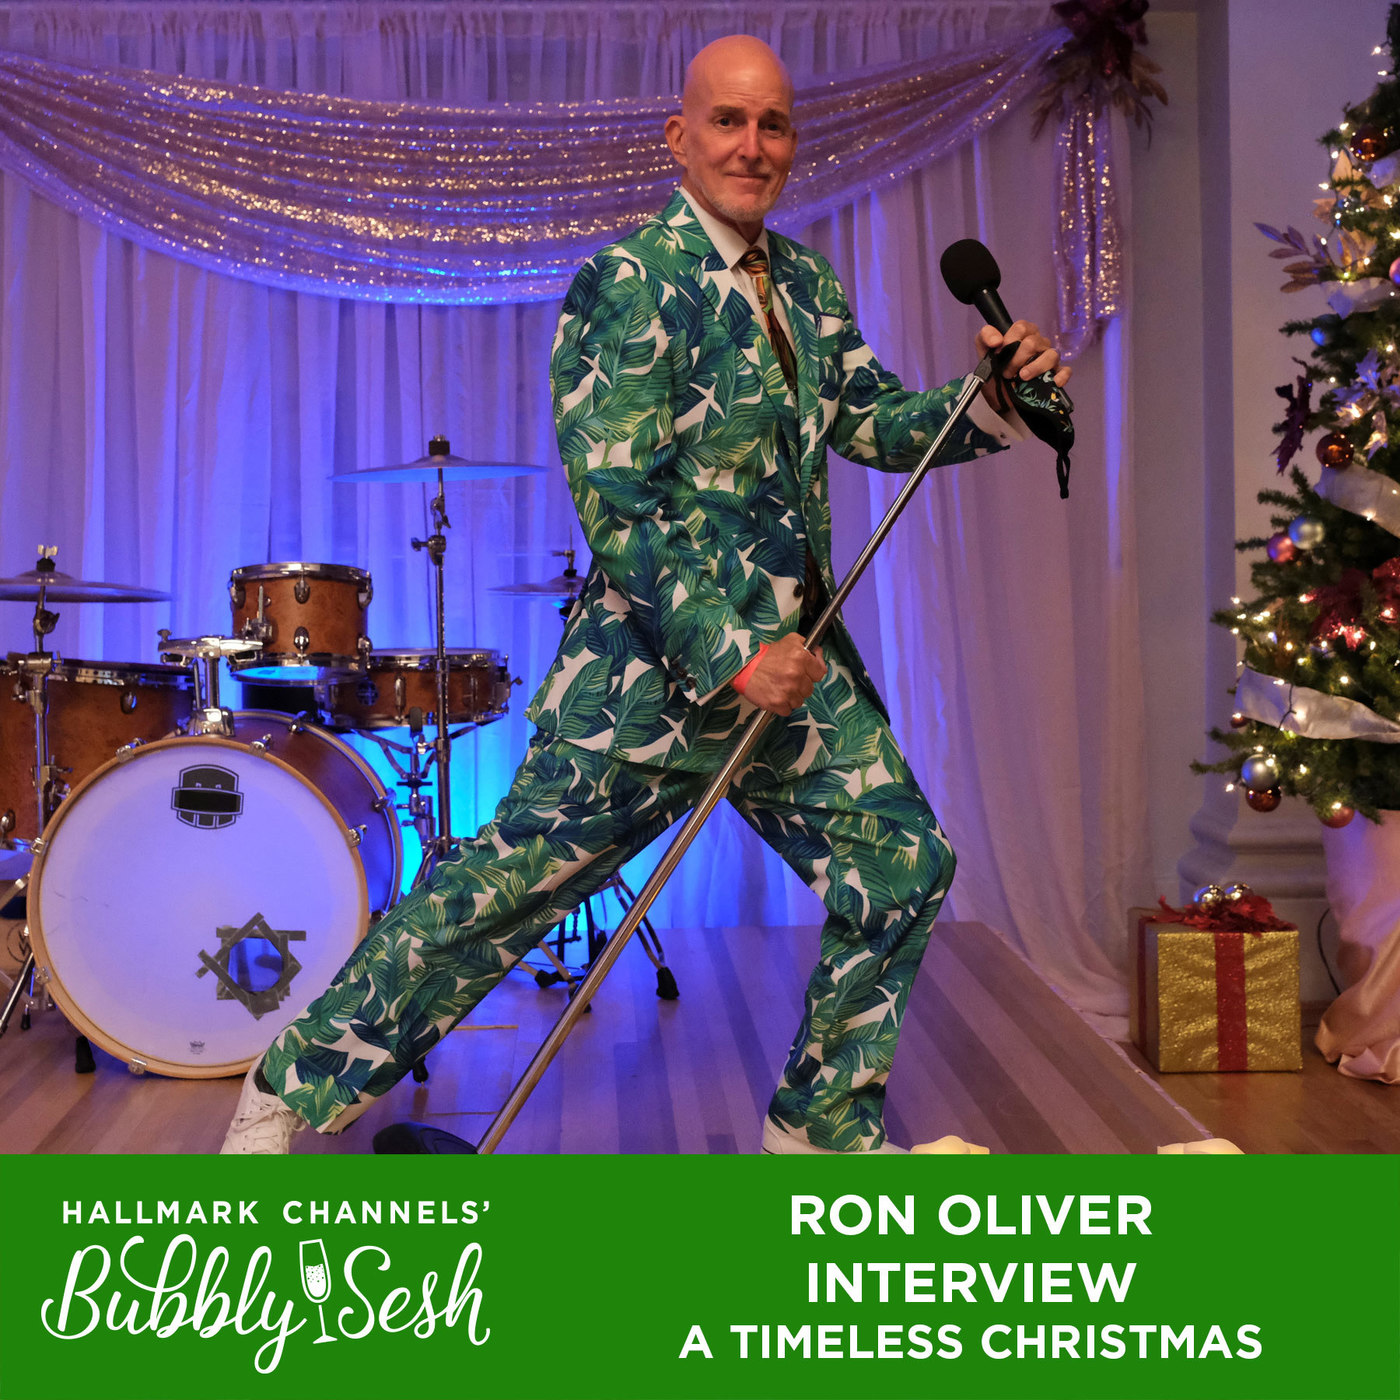 Ron Oliver Interview, A Timeless Christmas